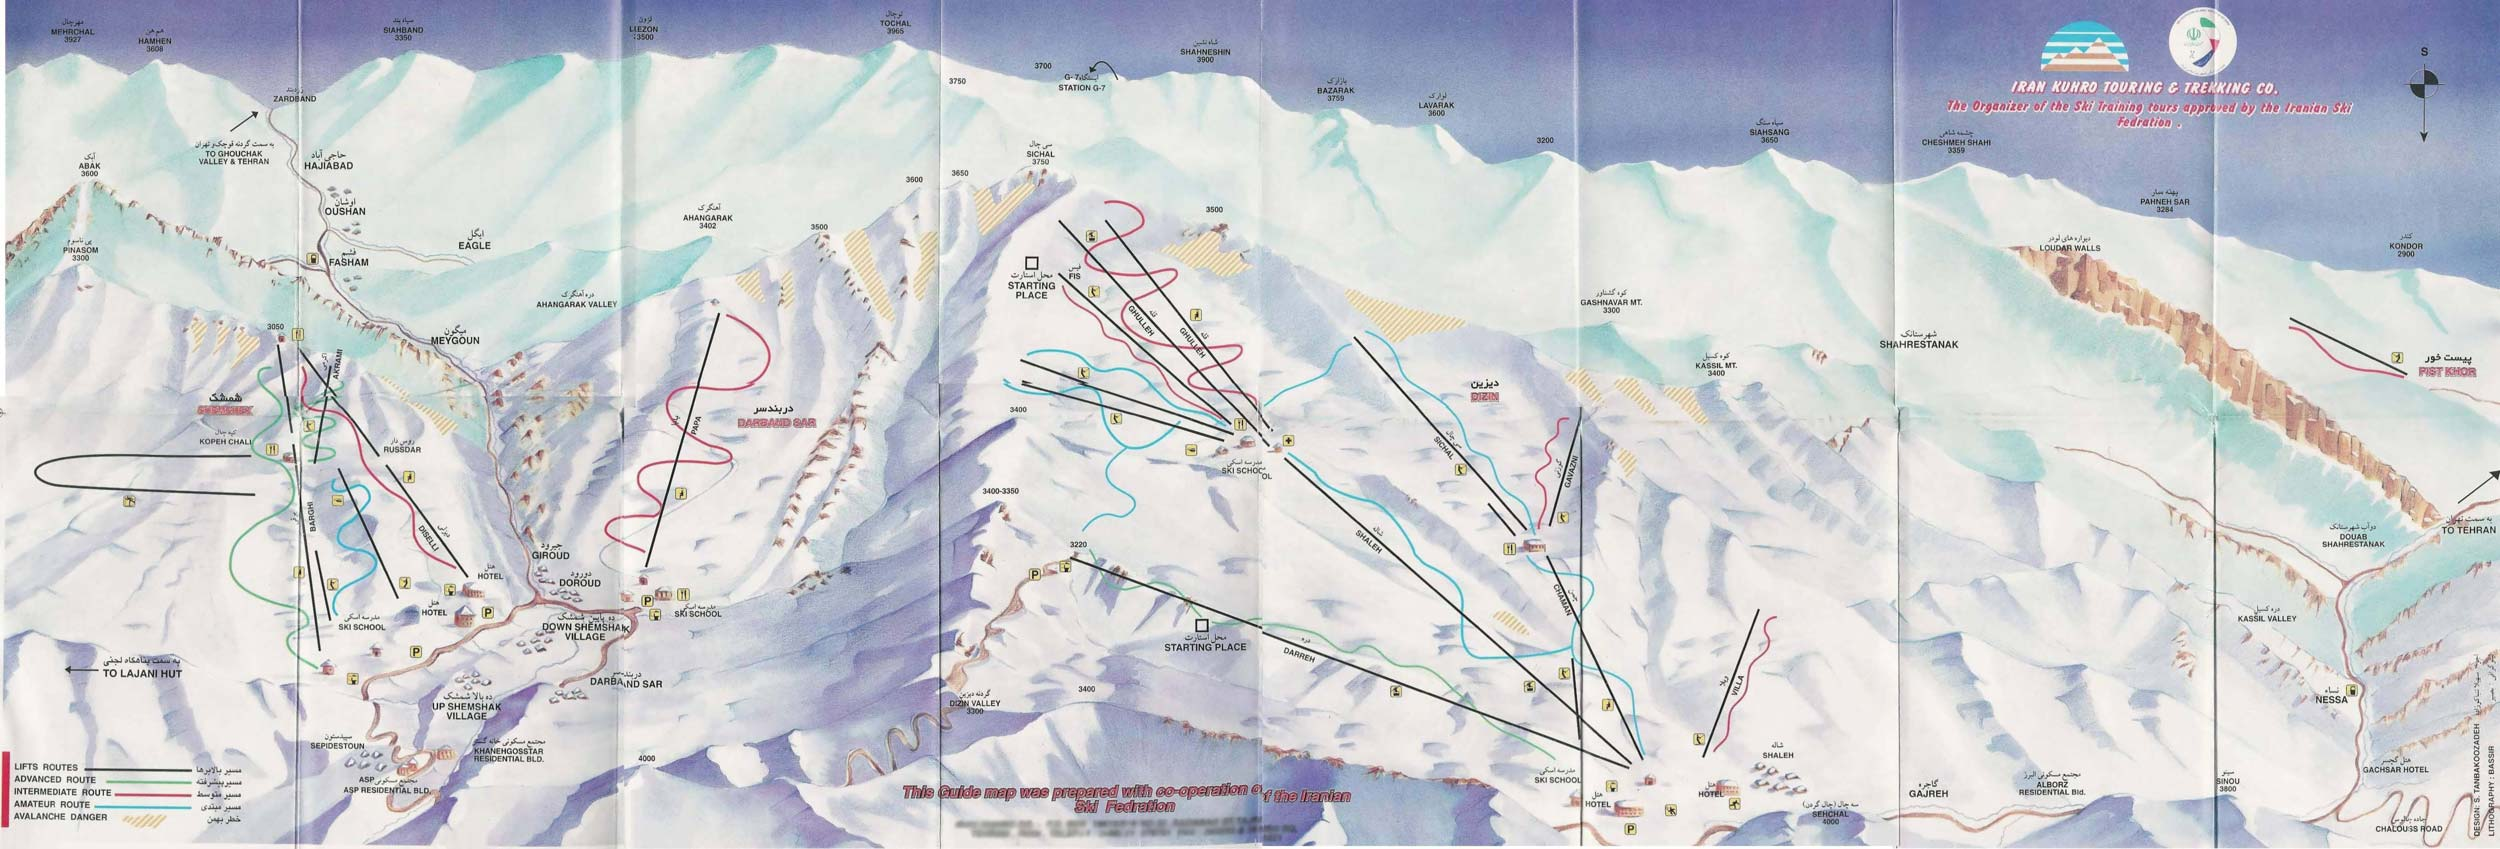 Iranian Ski Resorts Map